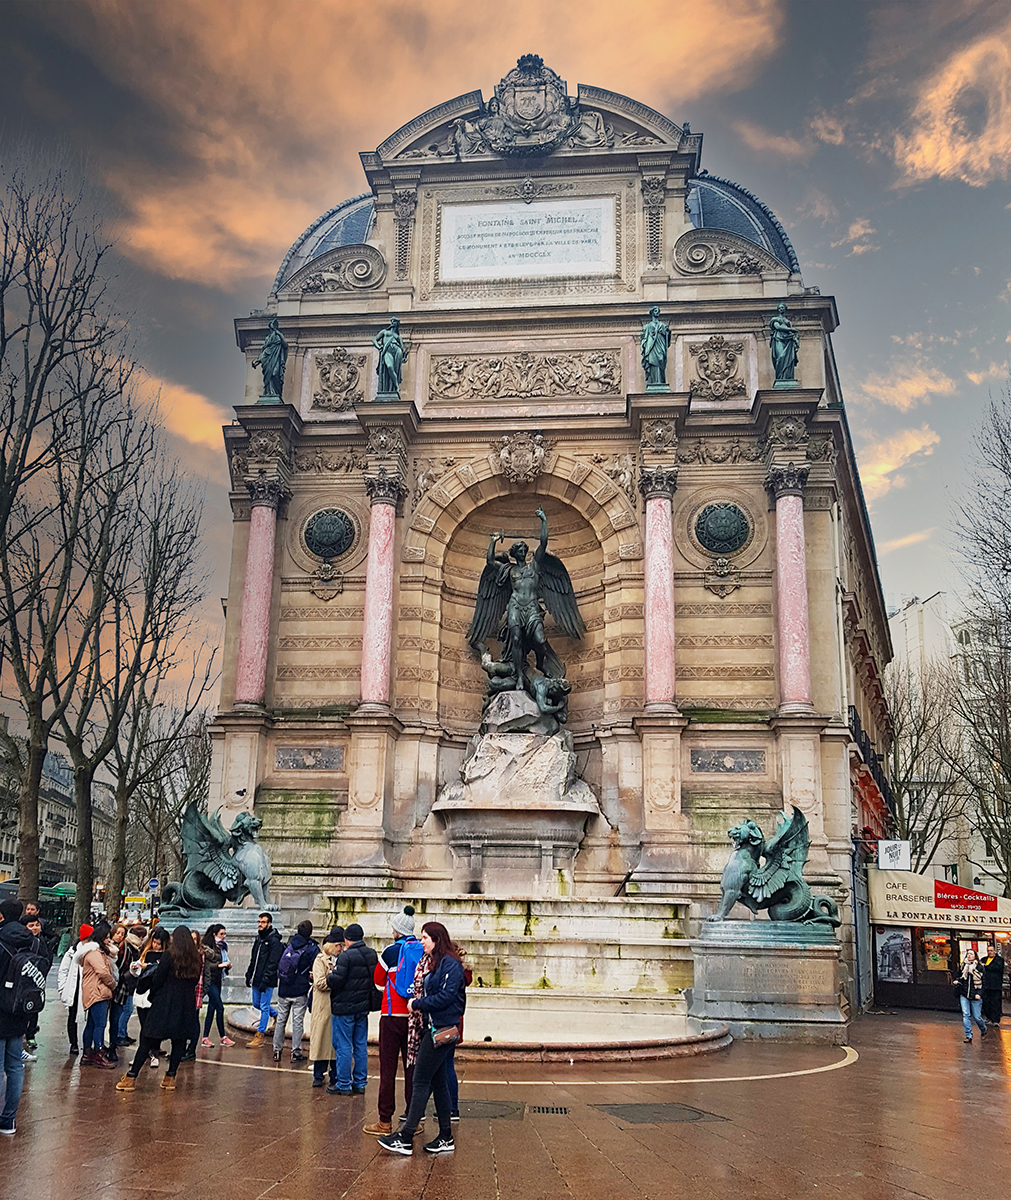 Saint-Michel Fountain, Paris